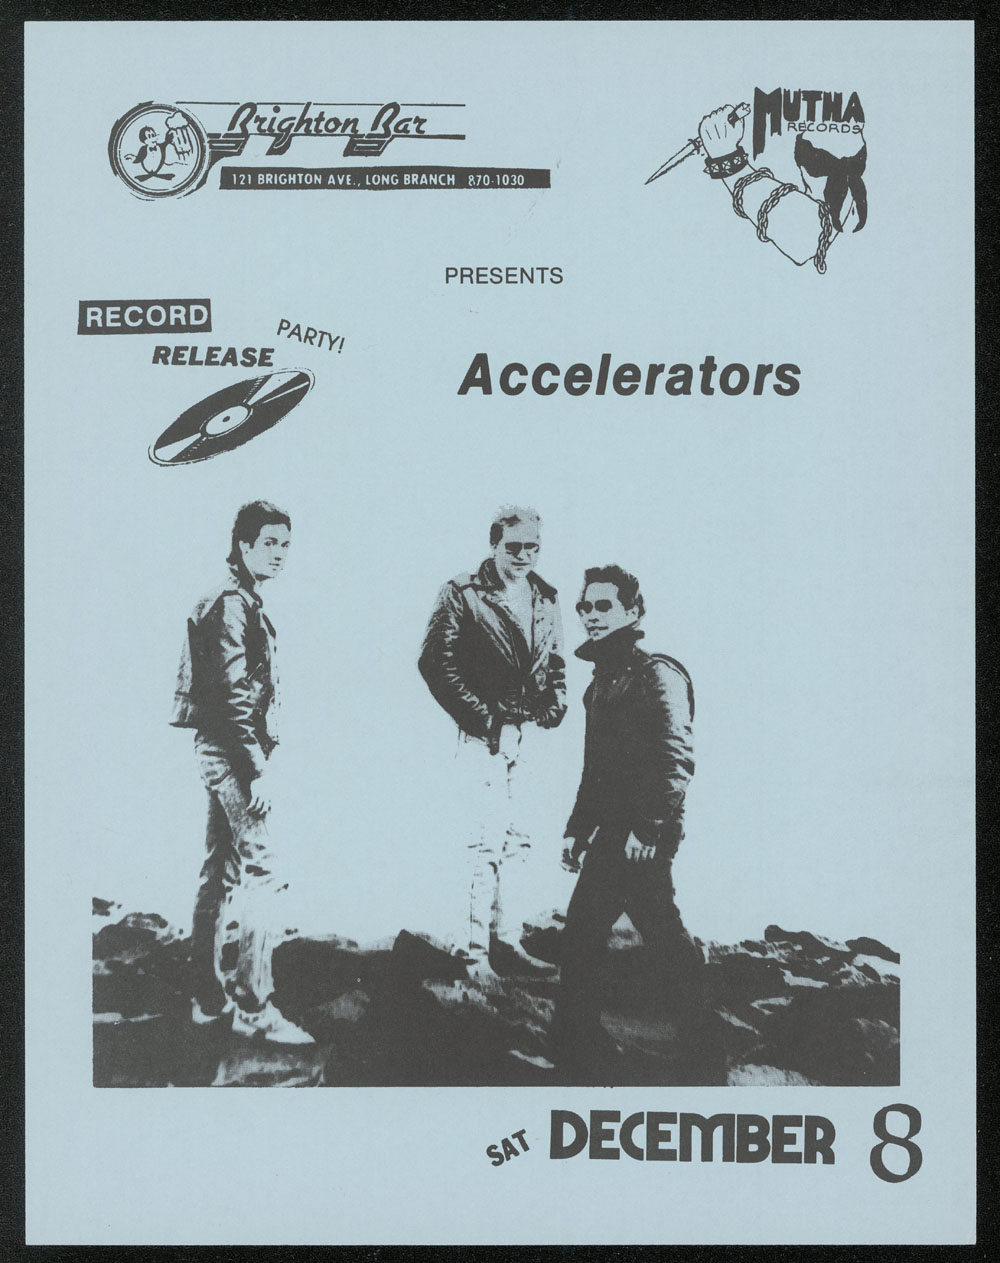 ACCELERATORS at Brighton Bar